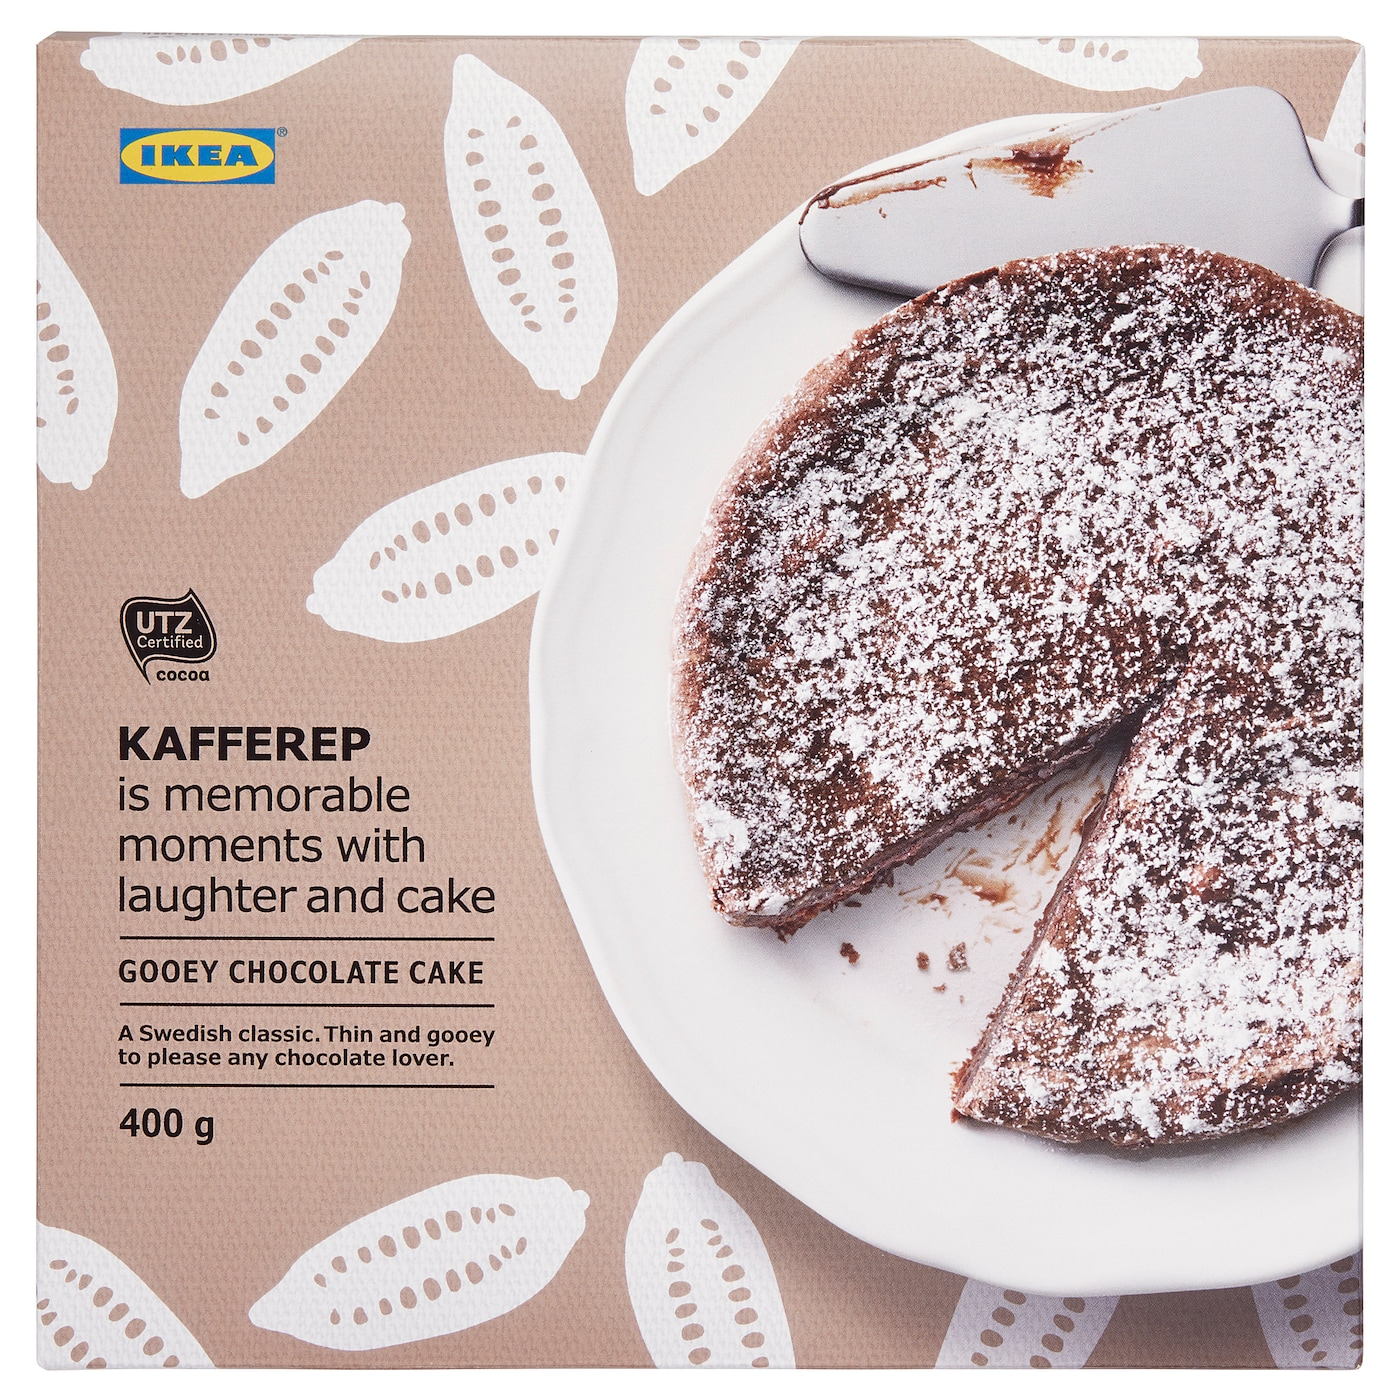 IKEA KAFFEREP gooey chocolate cake A Swedish classic. Thin and gooey to please any chocolate lover.